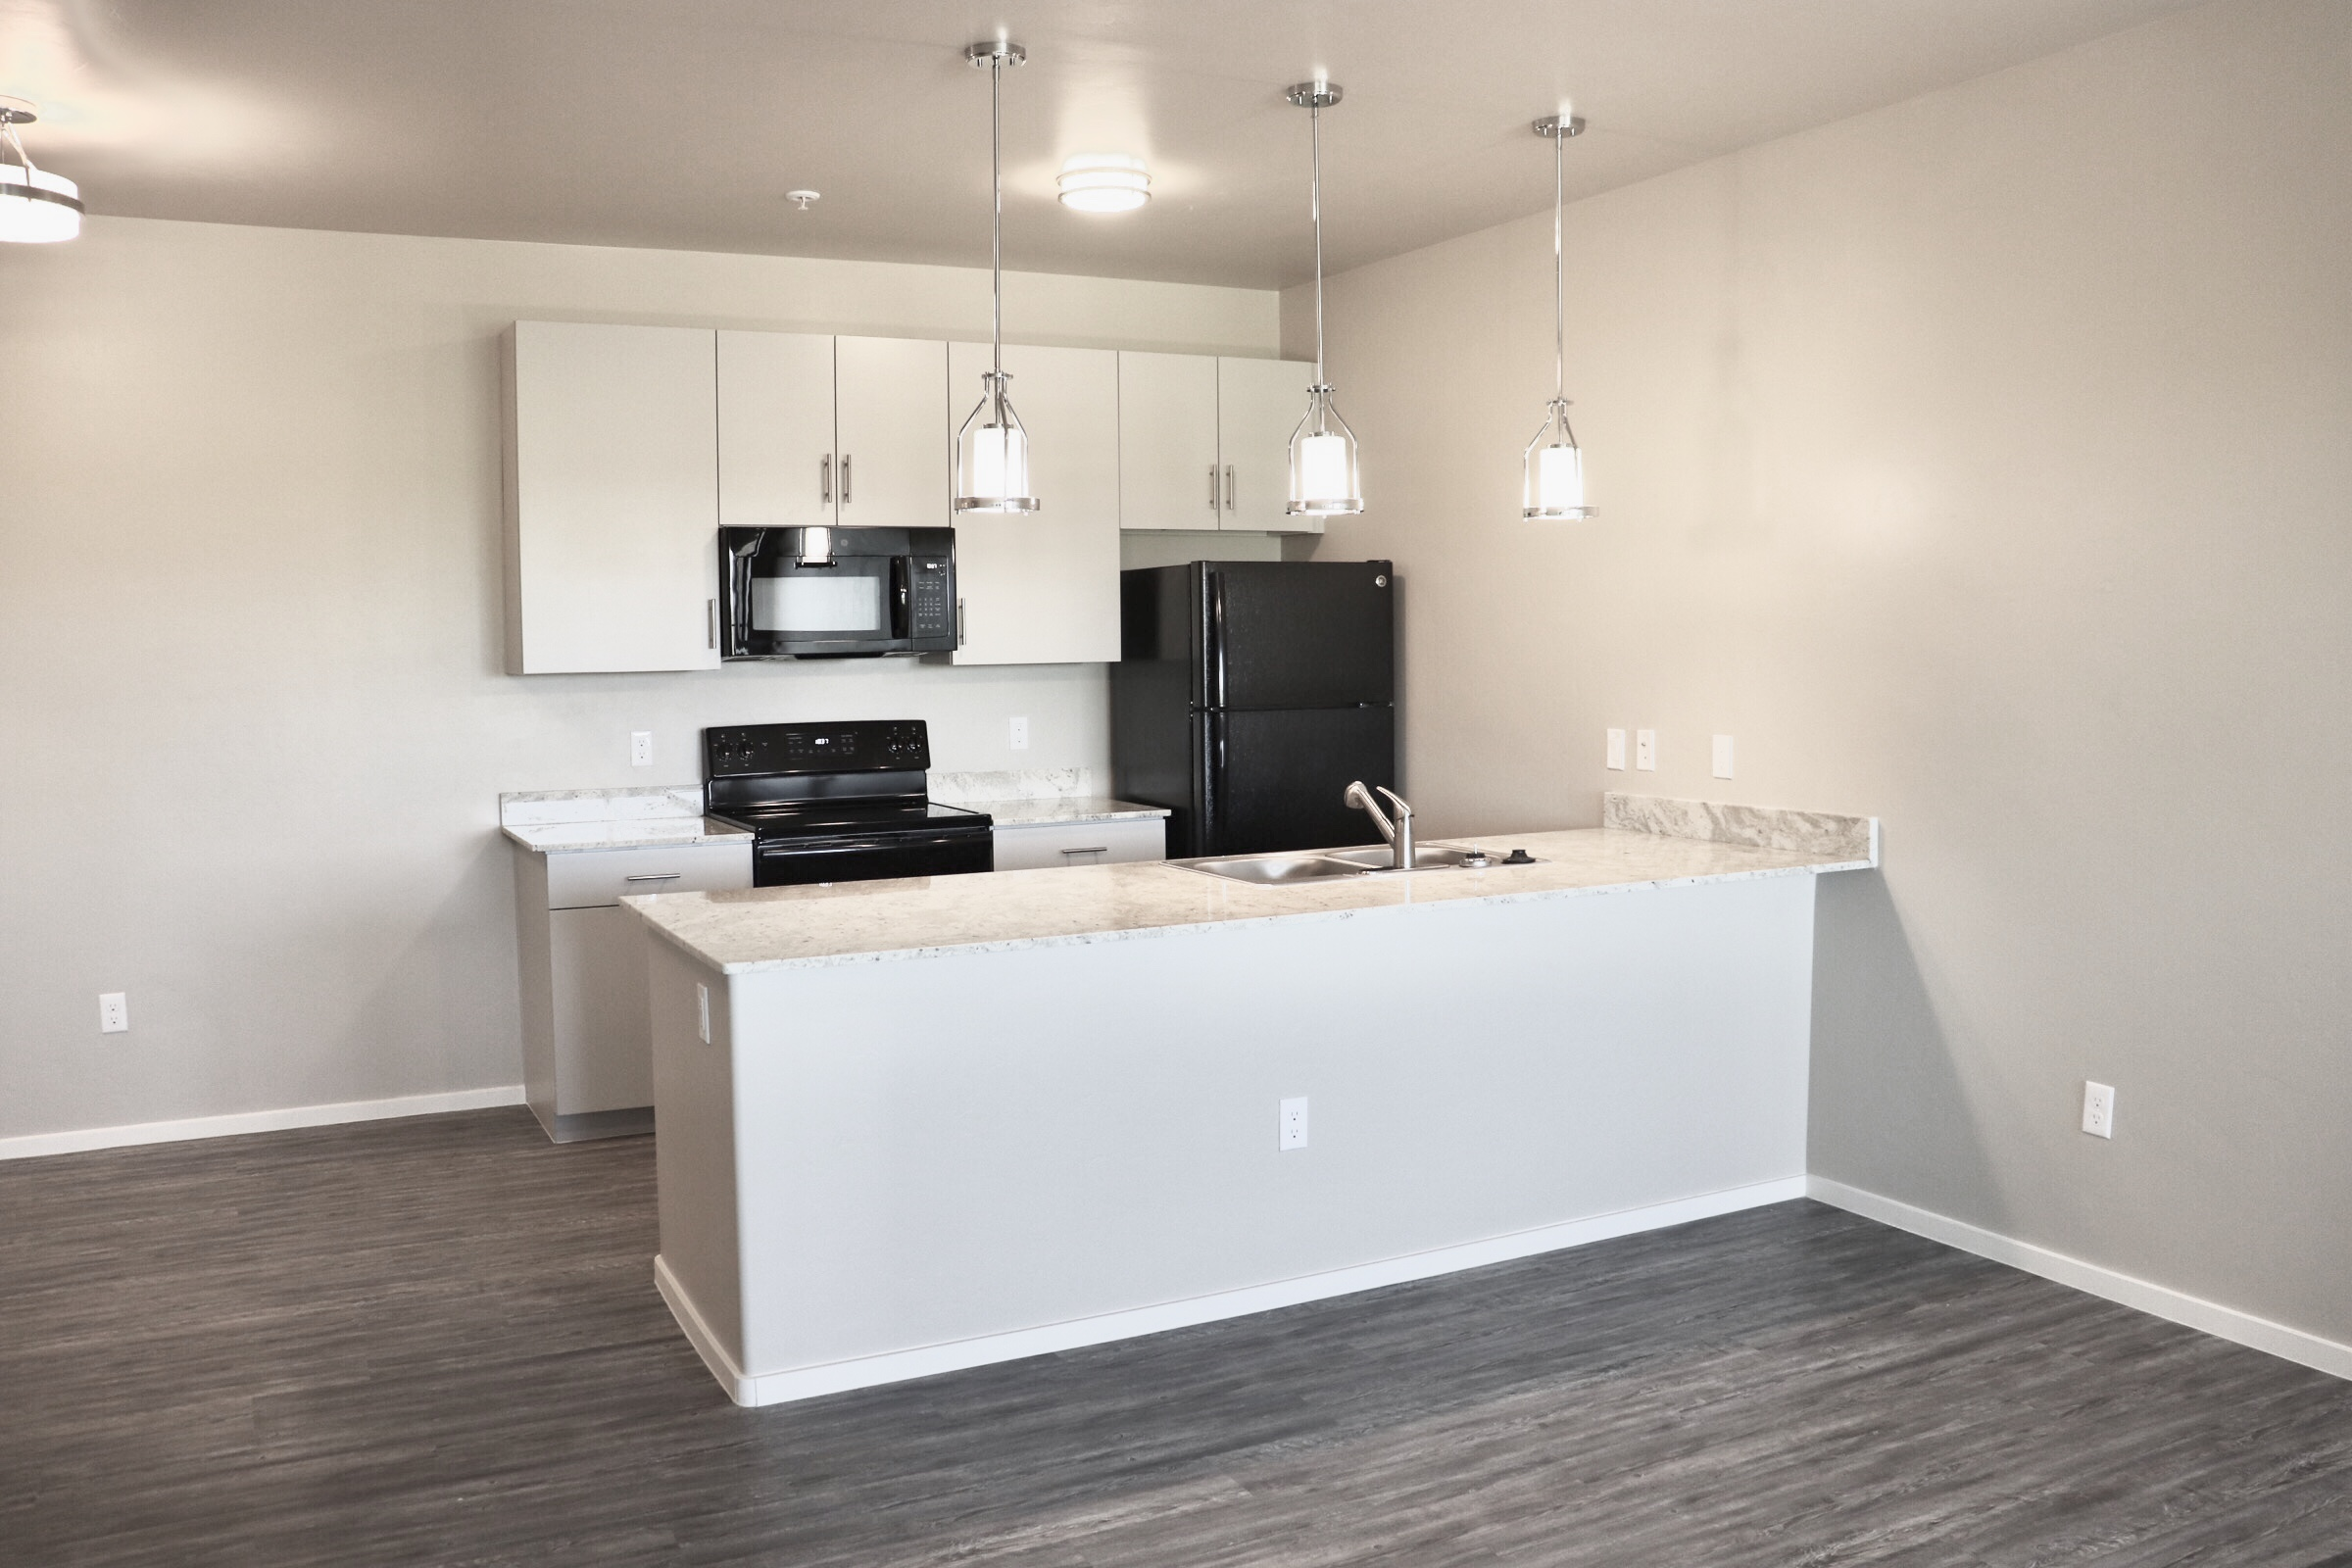 Brand new luxury one and two bedroom apartment homes with high end finishes and amenities